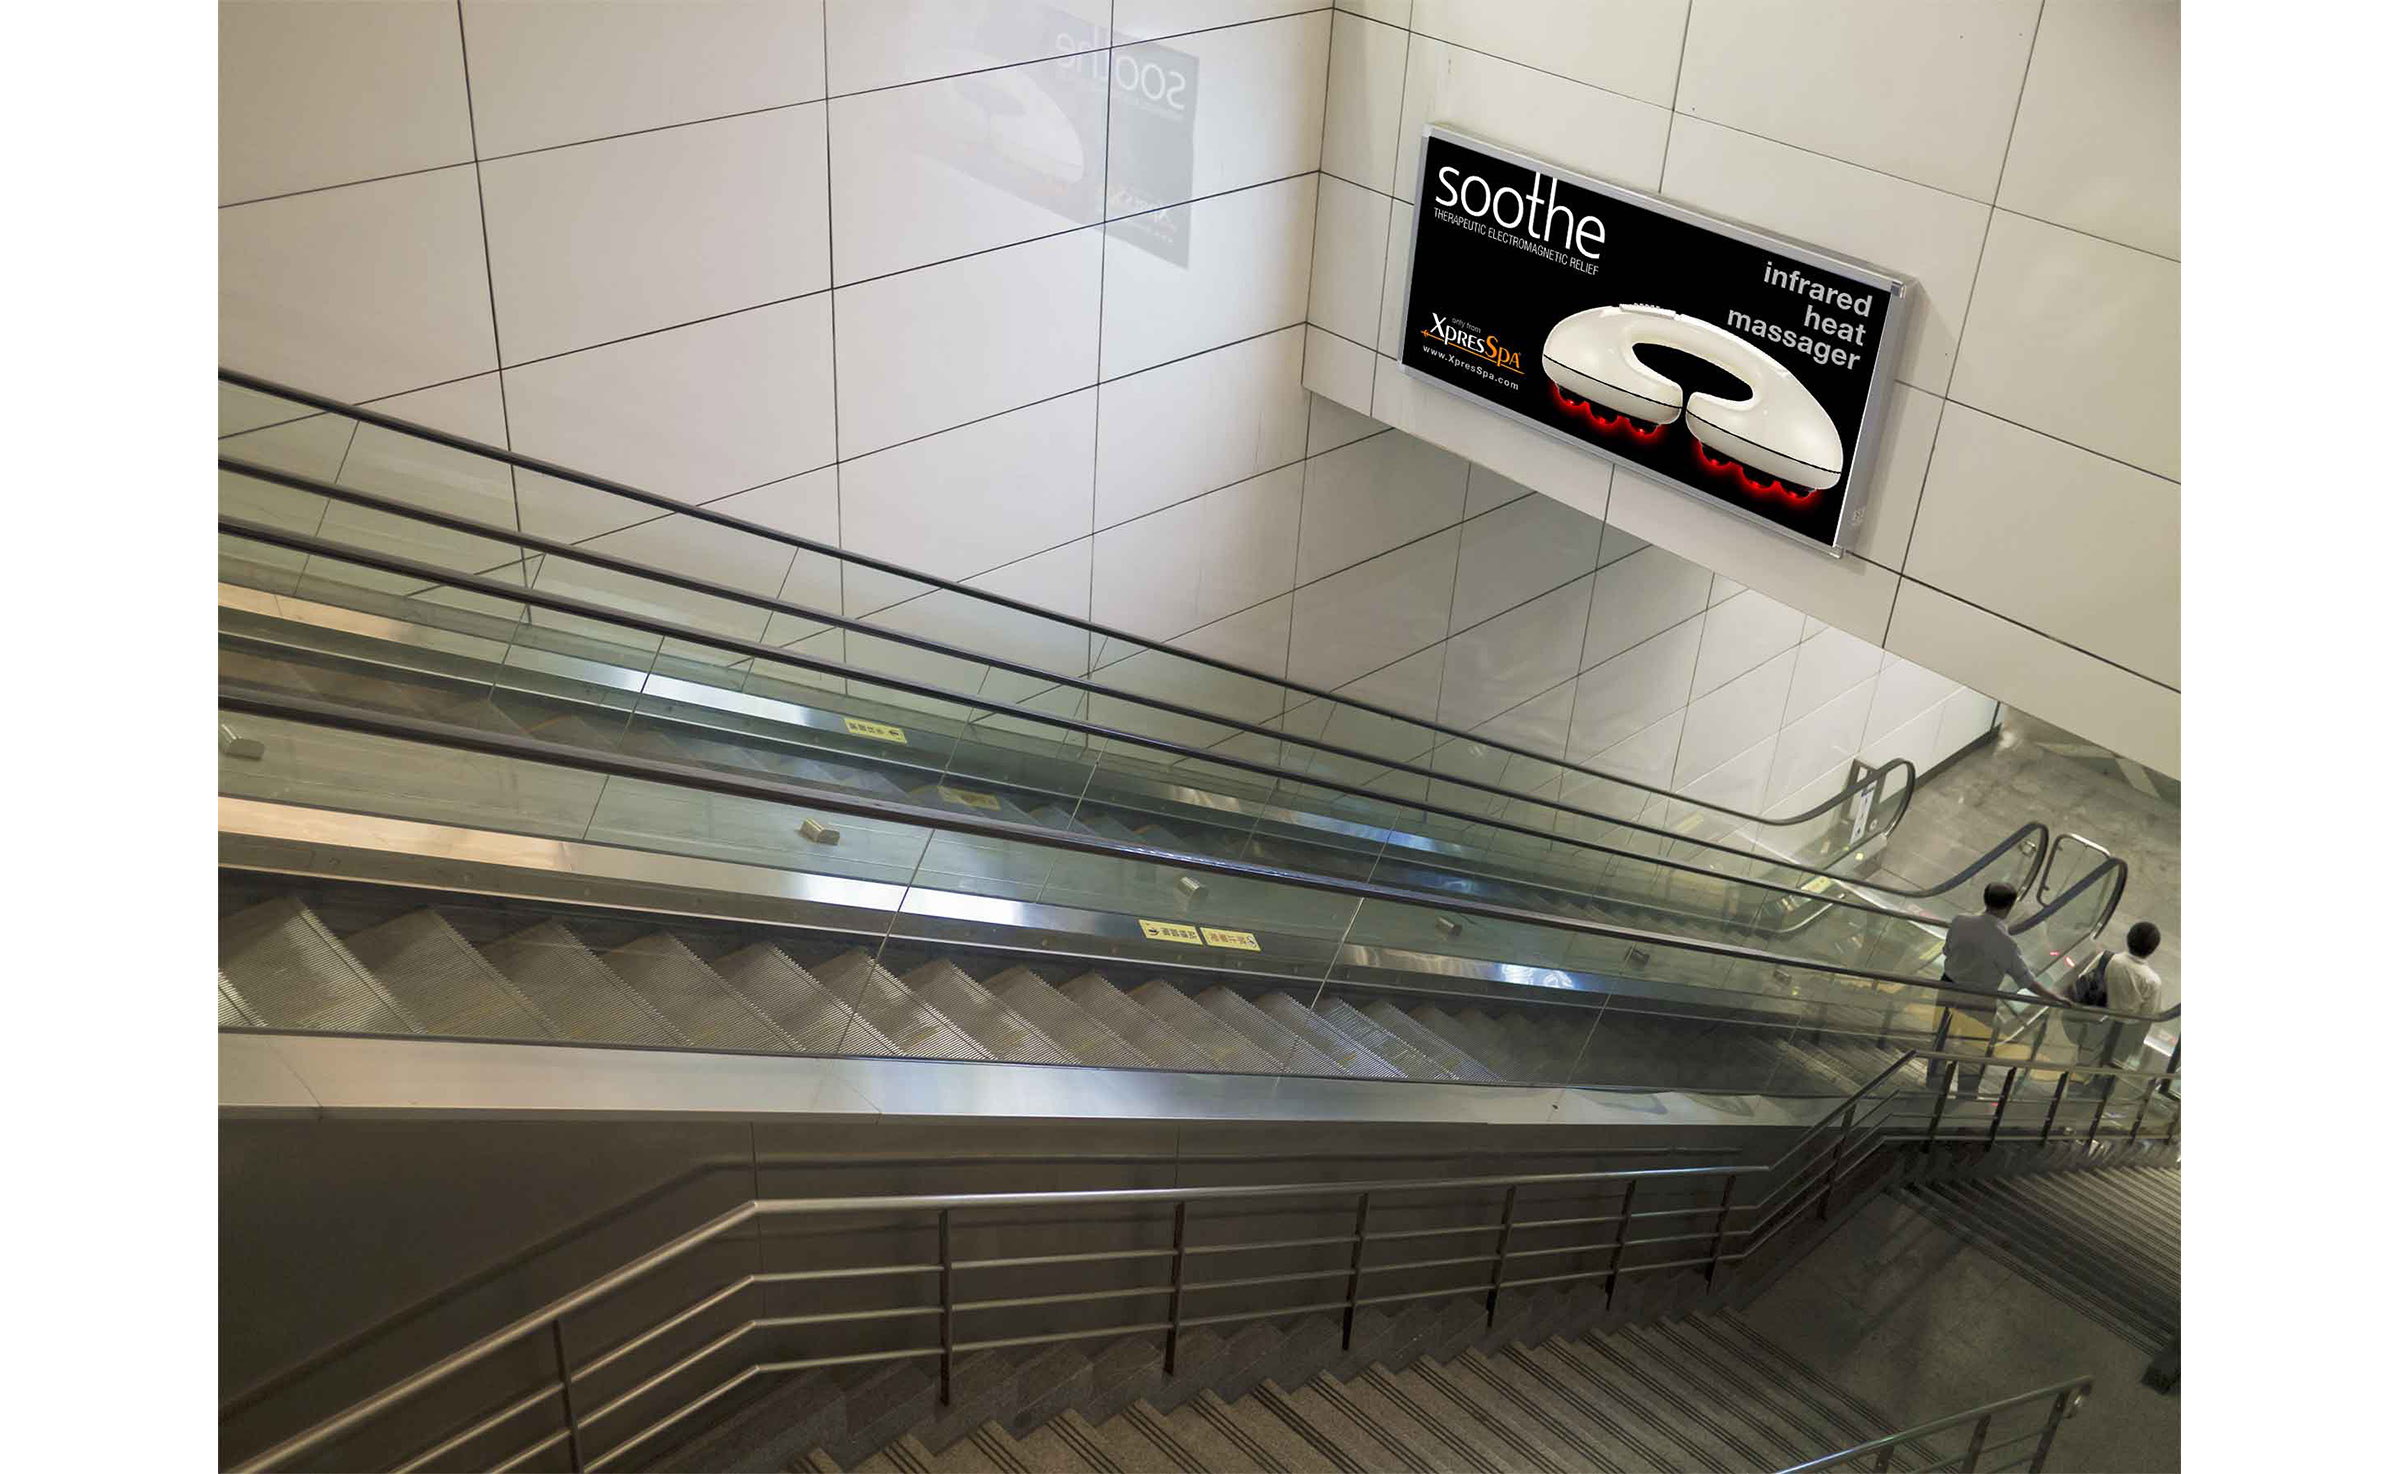 horizontal poster on above escalator